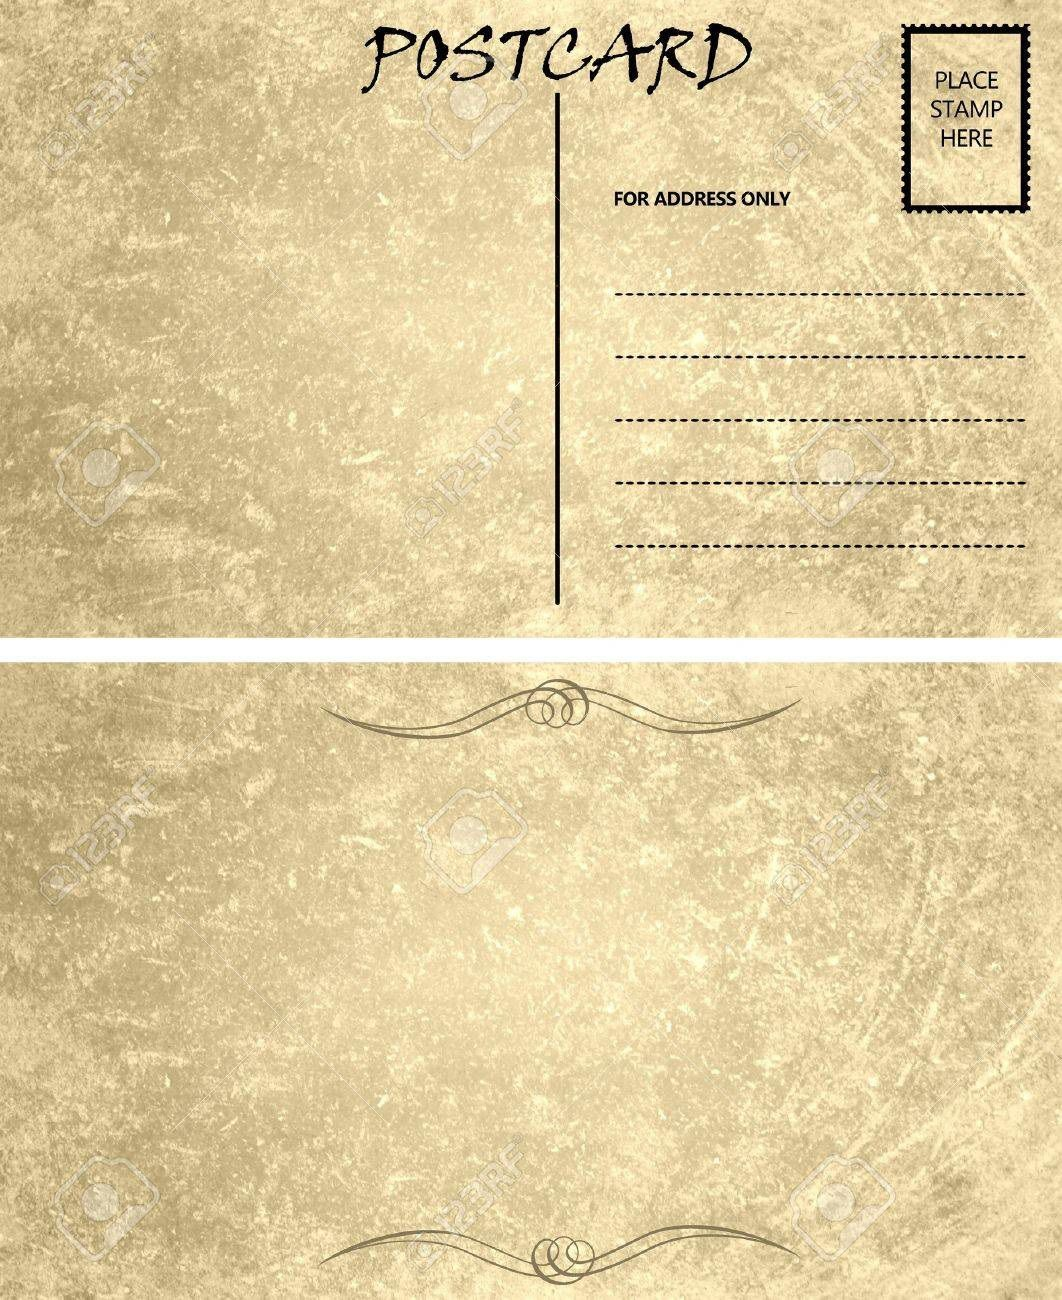 006 Wondrou Postcard Front And Back Template Free Image  To SchoolFull